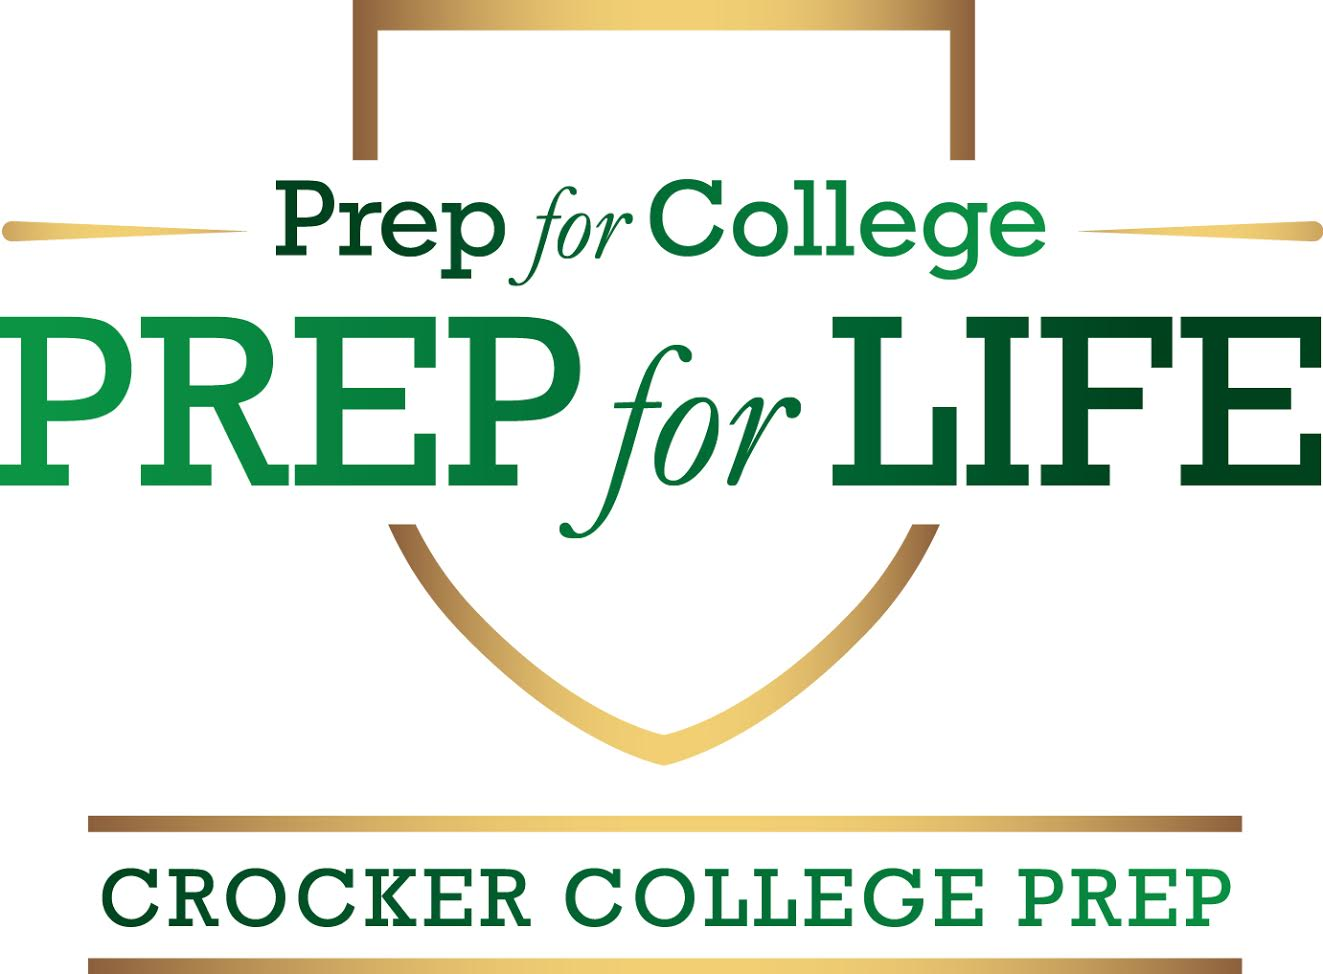 Lawrence D. Crocker College Prep